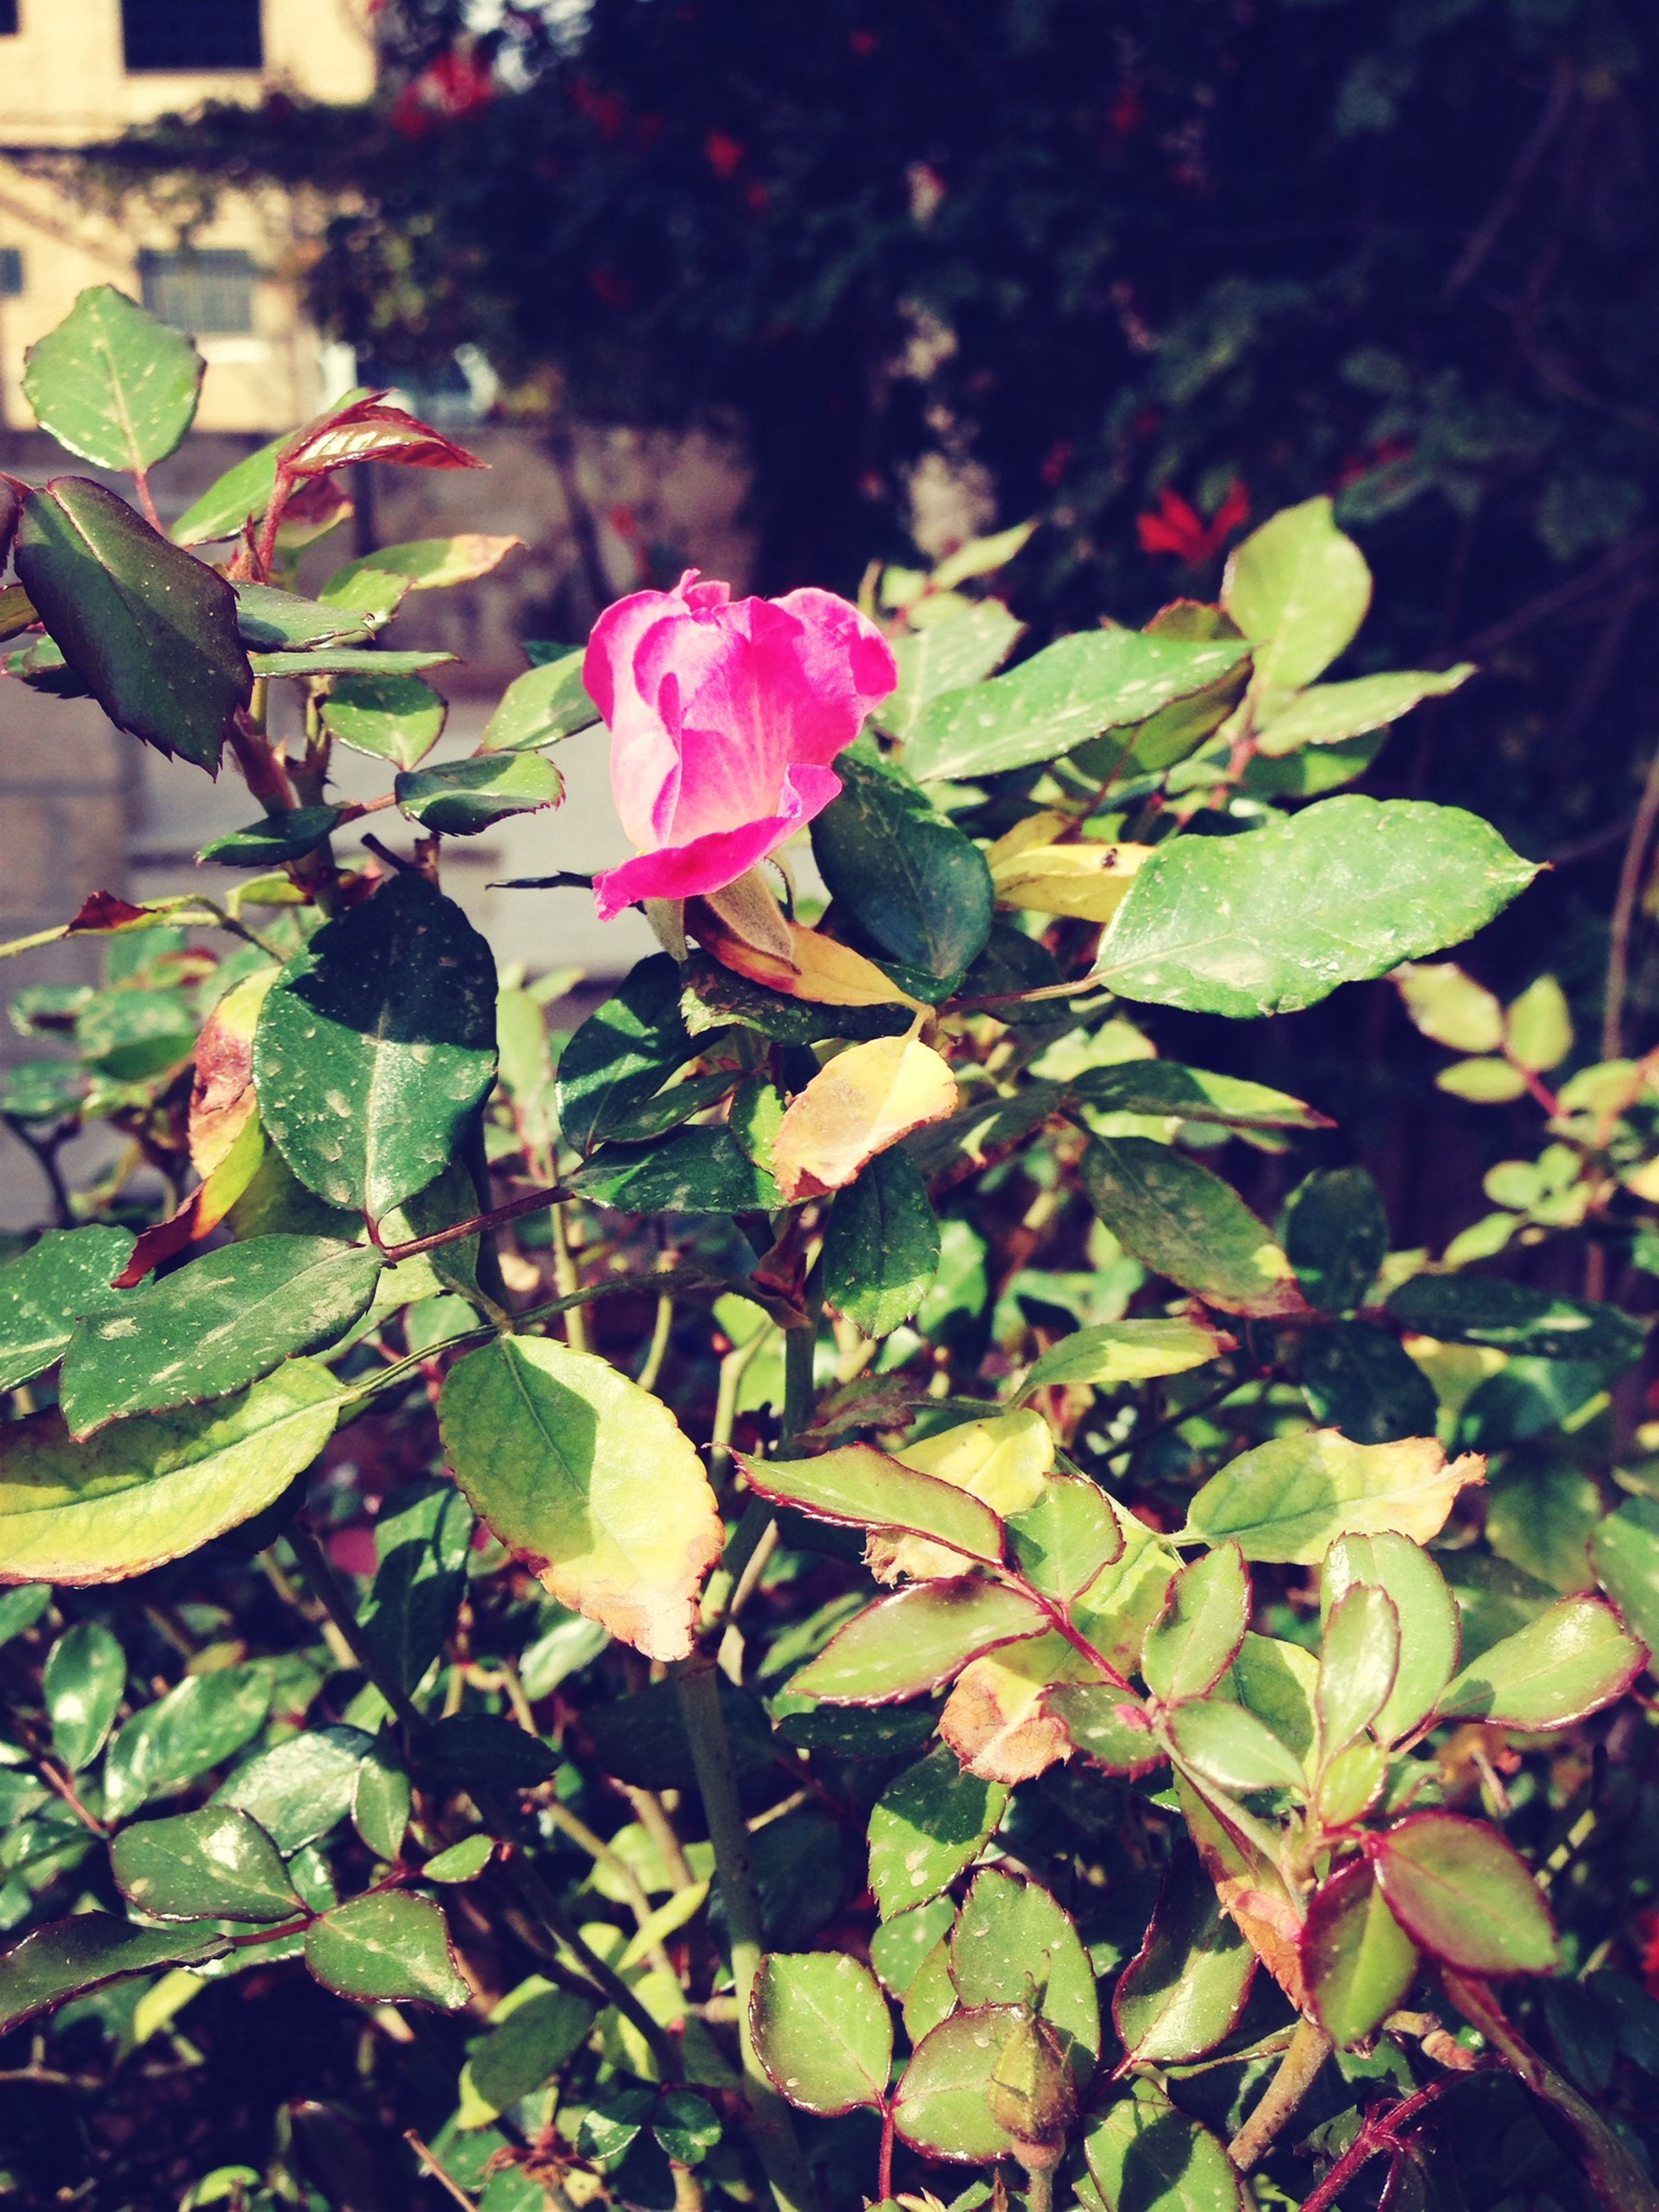 flower, leaf, growth, freshness, petal, fragility, beauty in nature, plant, flower head, nature, blooming, pink color, close-up, green color, in bloom, high angle view, focus on foreground, outdoors, day, park - man made space